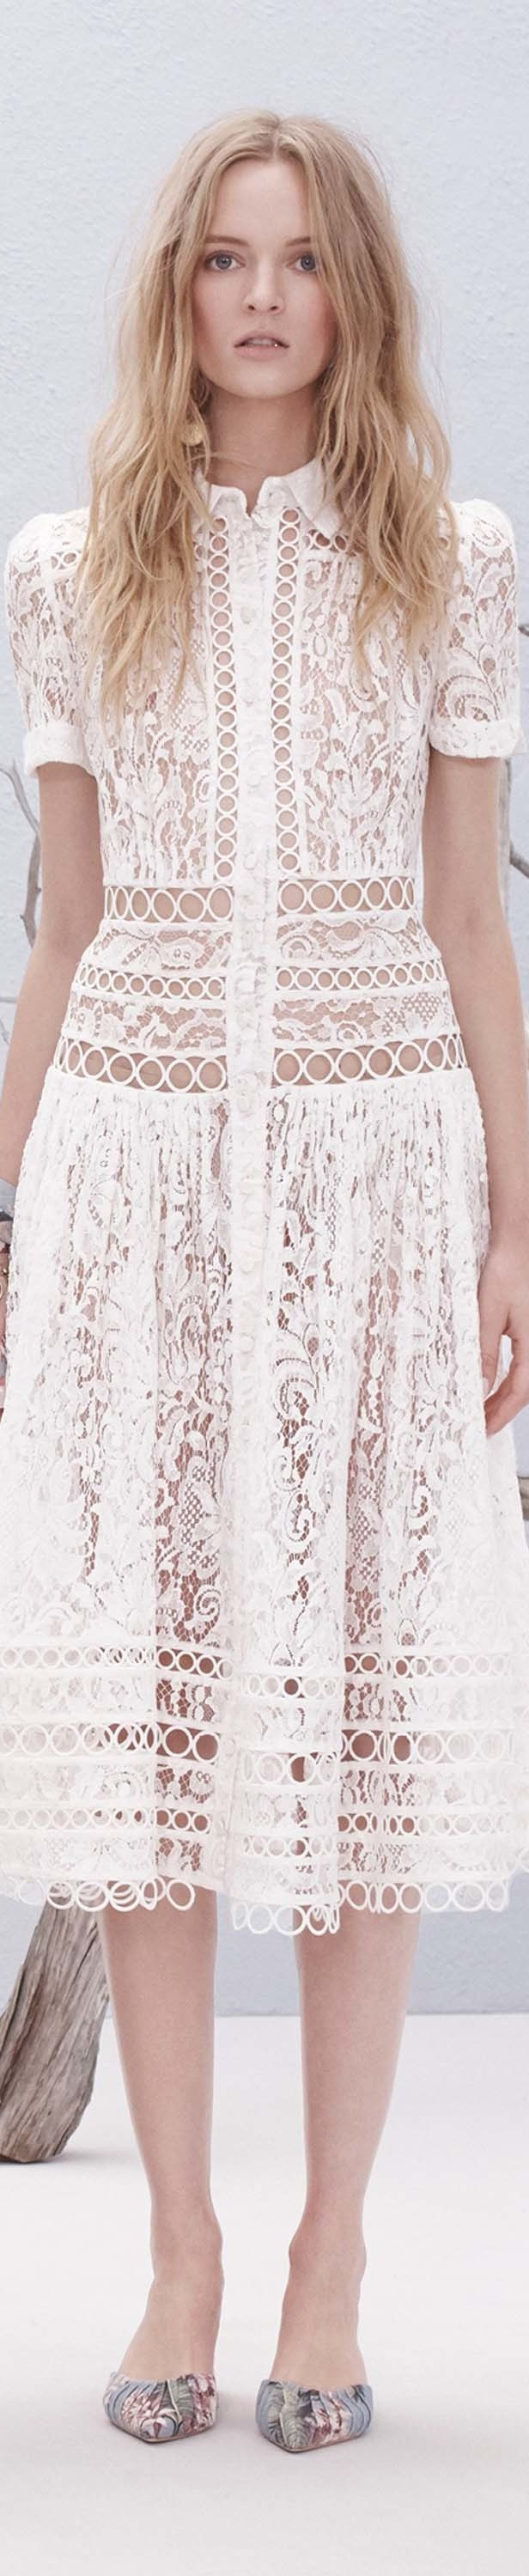 Zimmermann resort style pinterest resorts fasion and